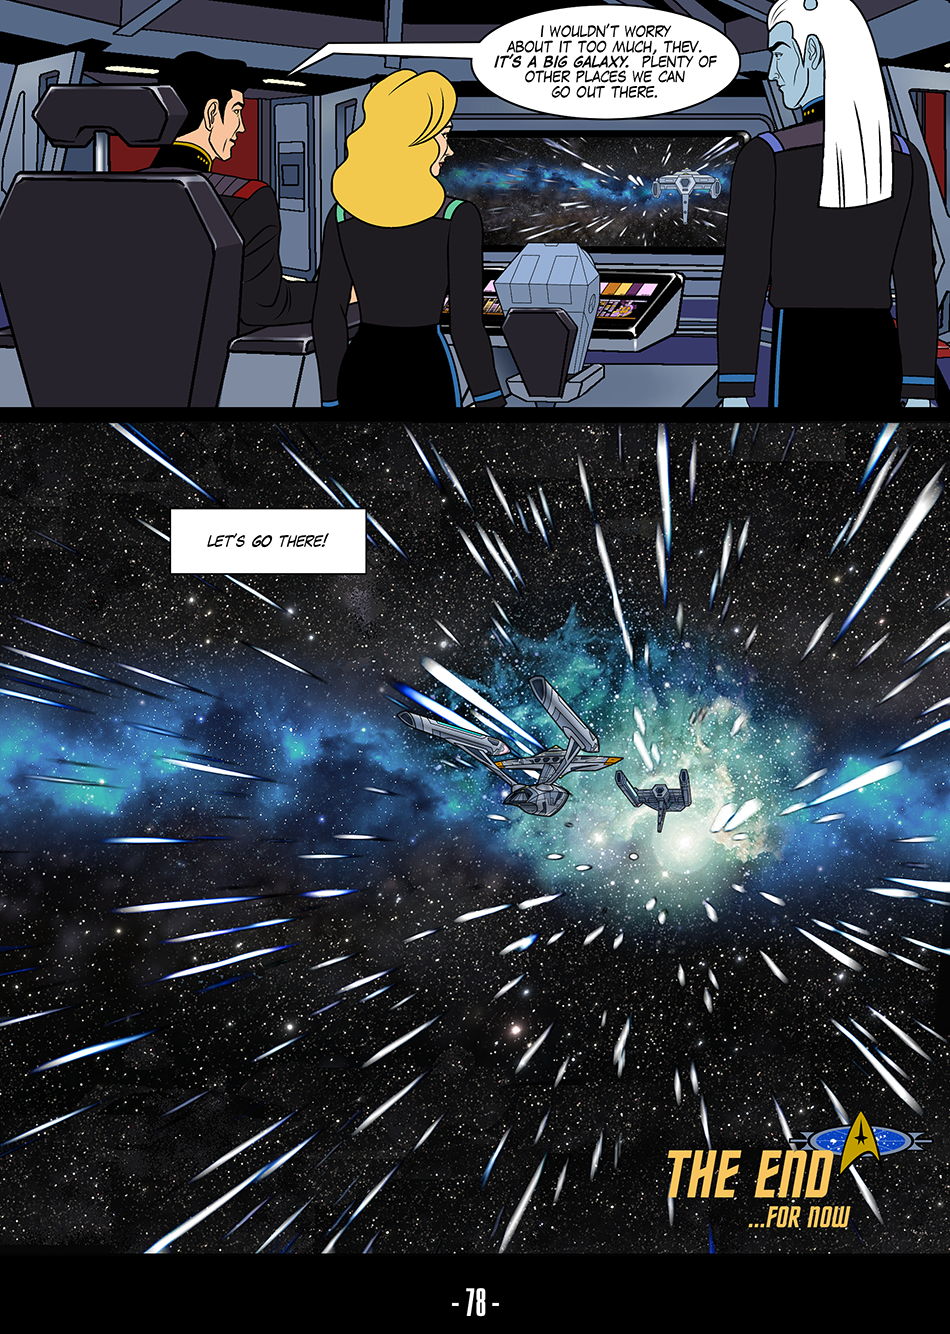 Enterprise-G  Episode 1  Where No Man Can Go  Page 78